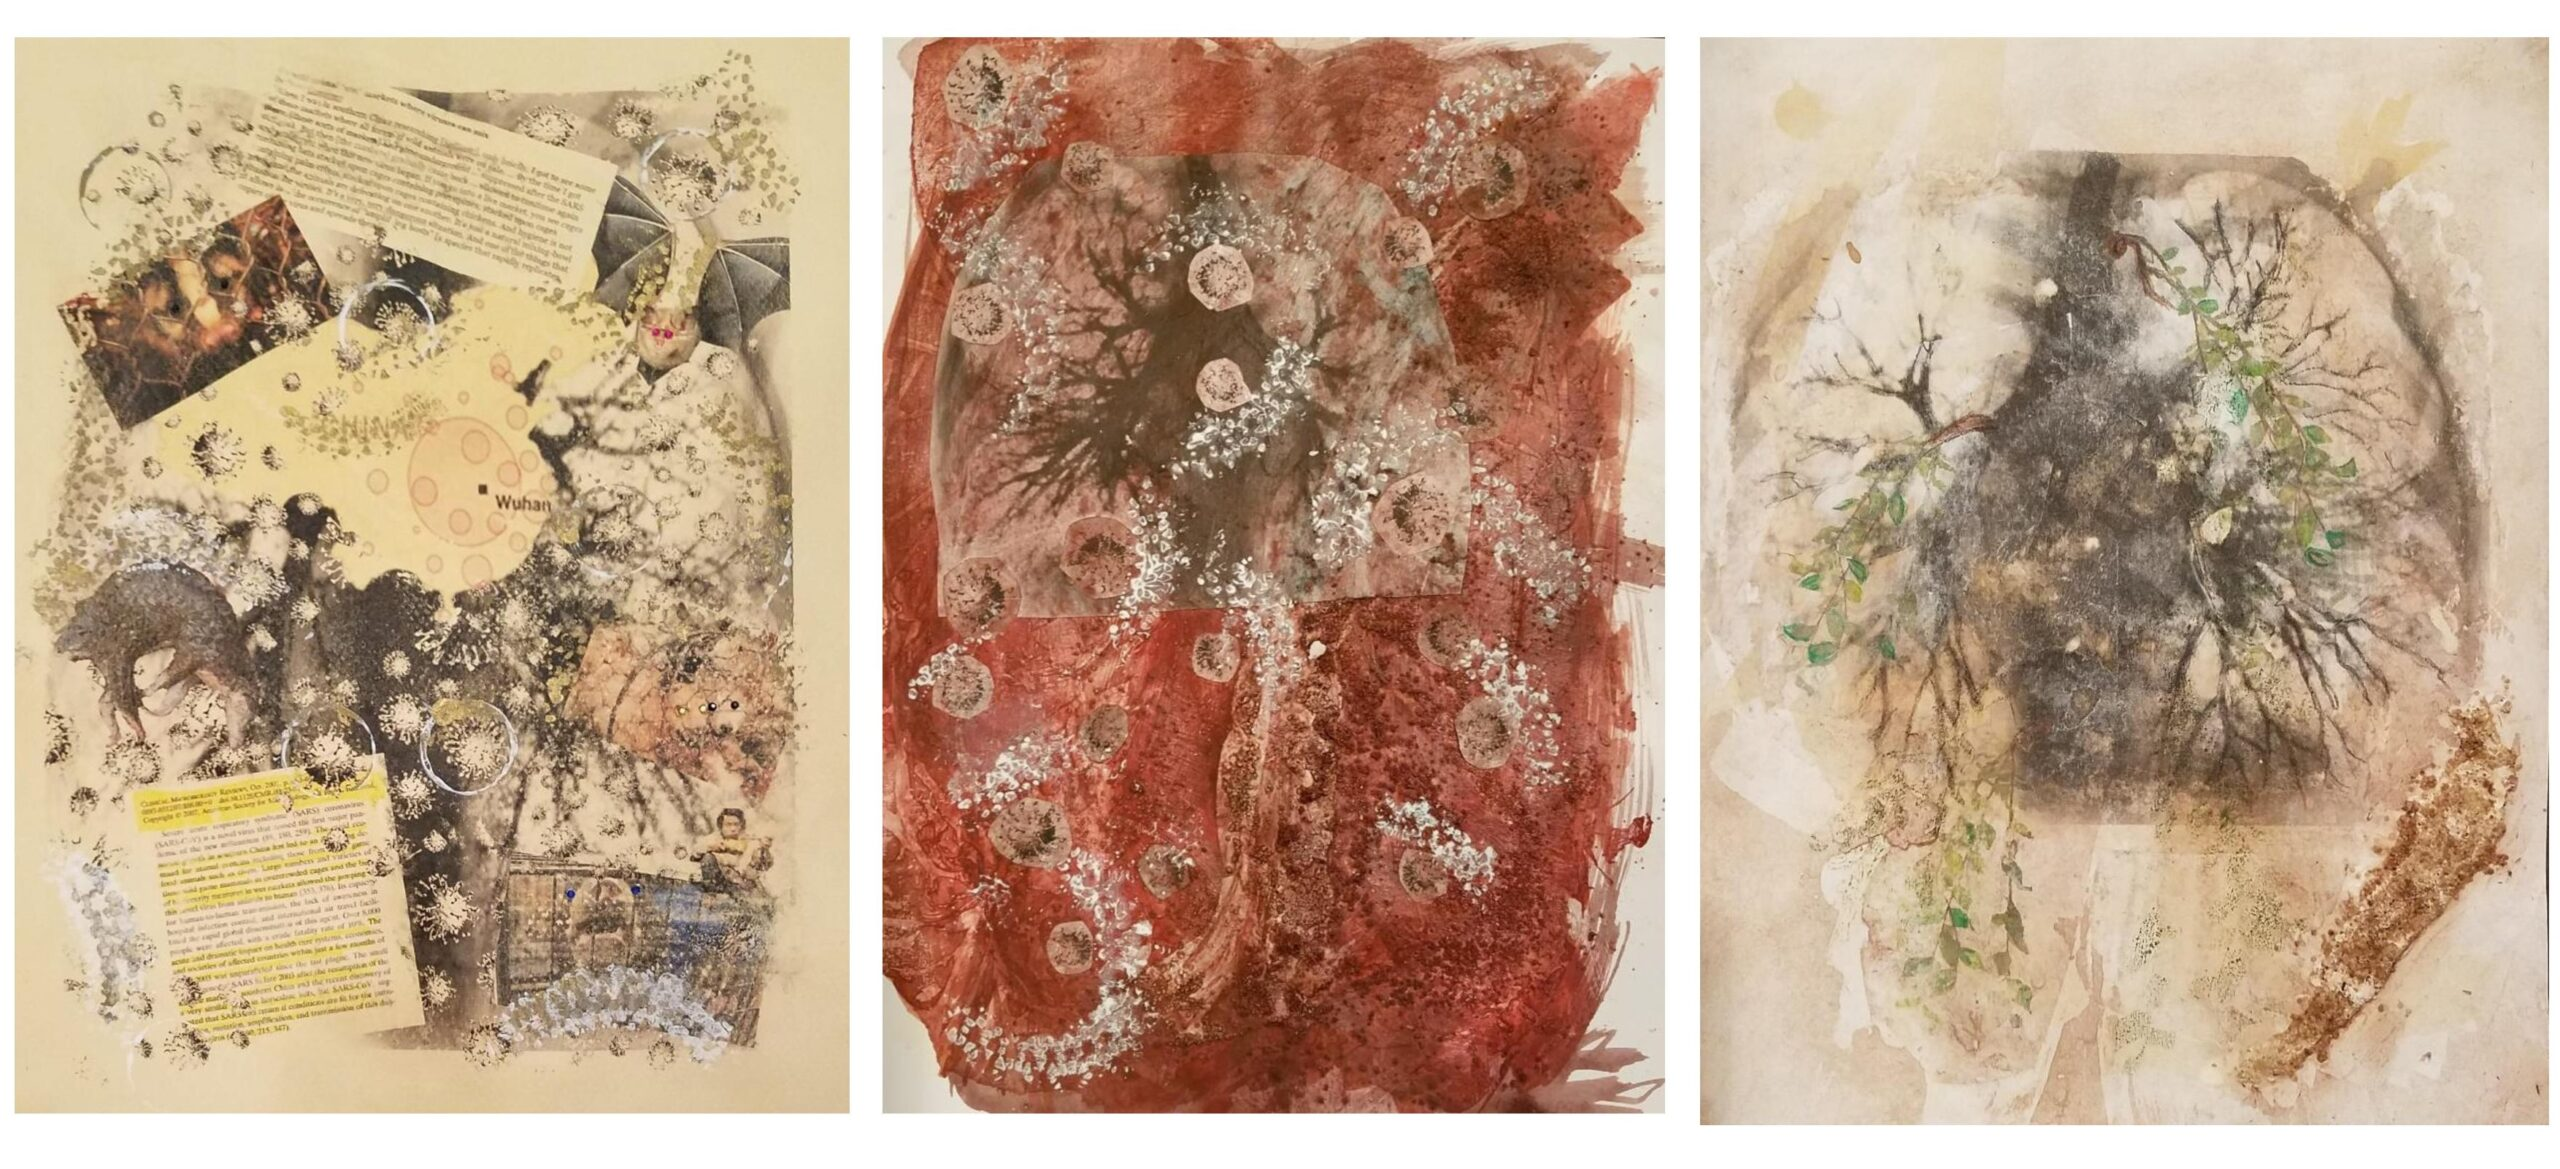 Washed Out Visual art by Gretchen Gales